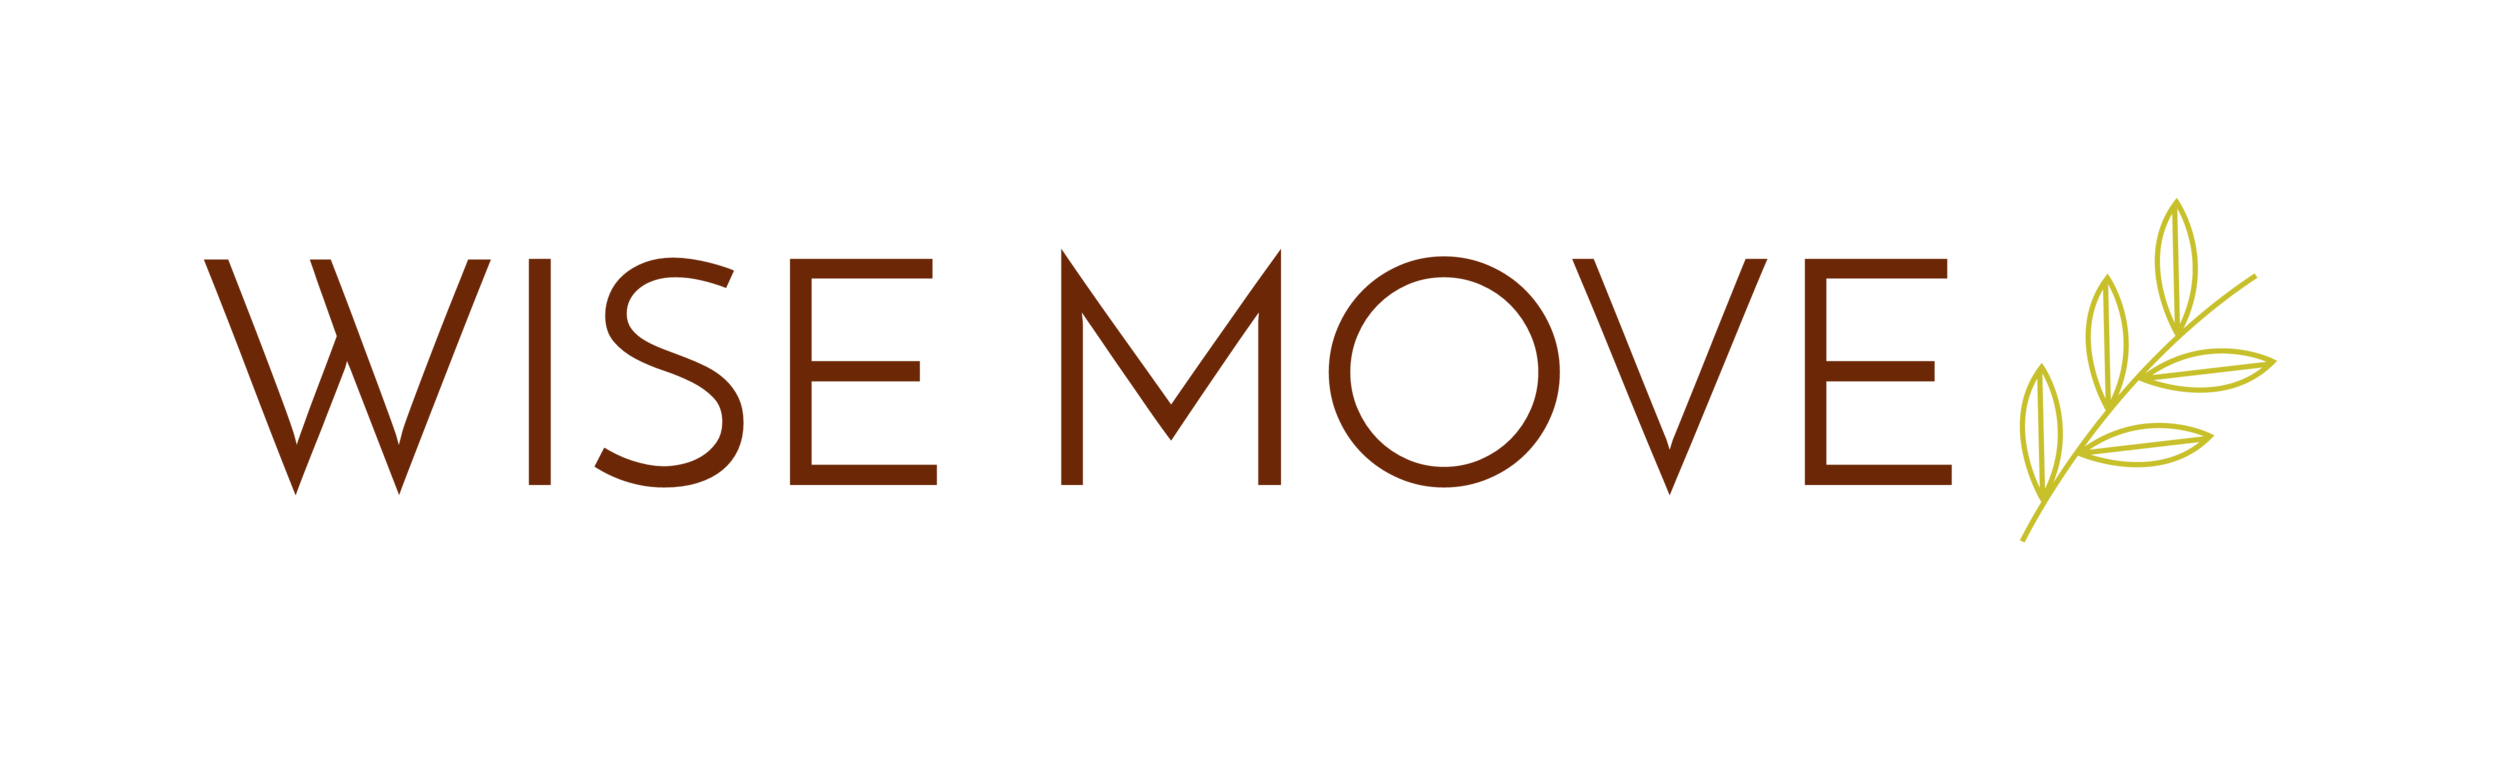 WISE MOVE-logo (7).png